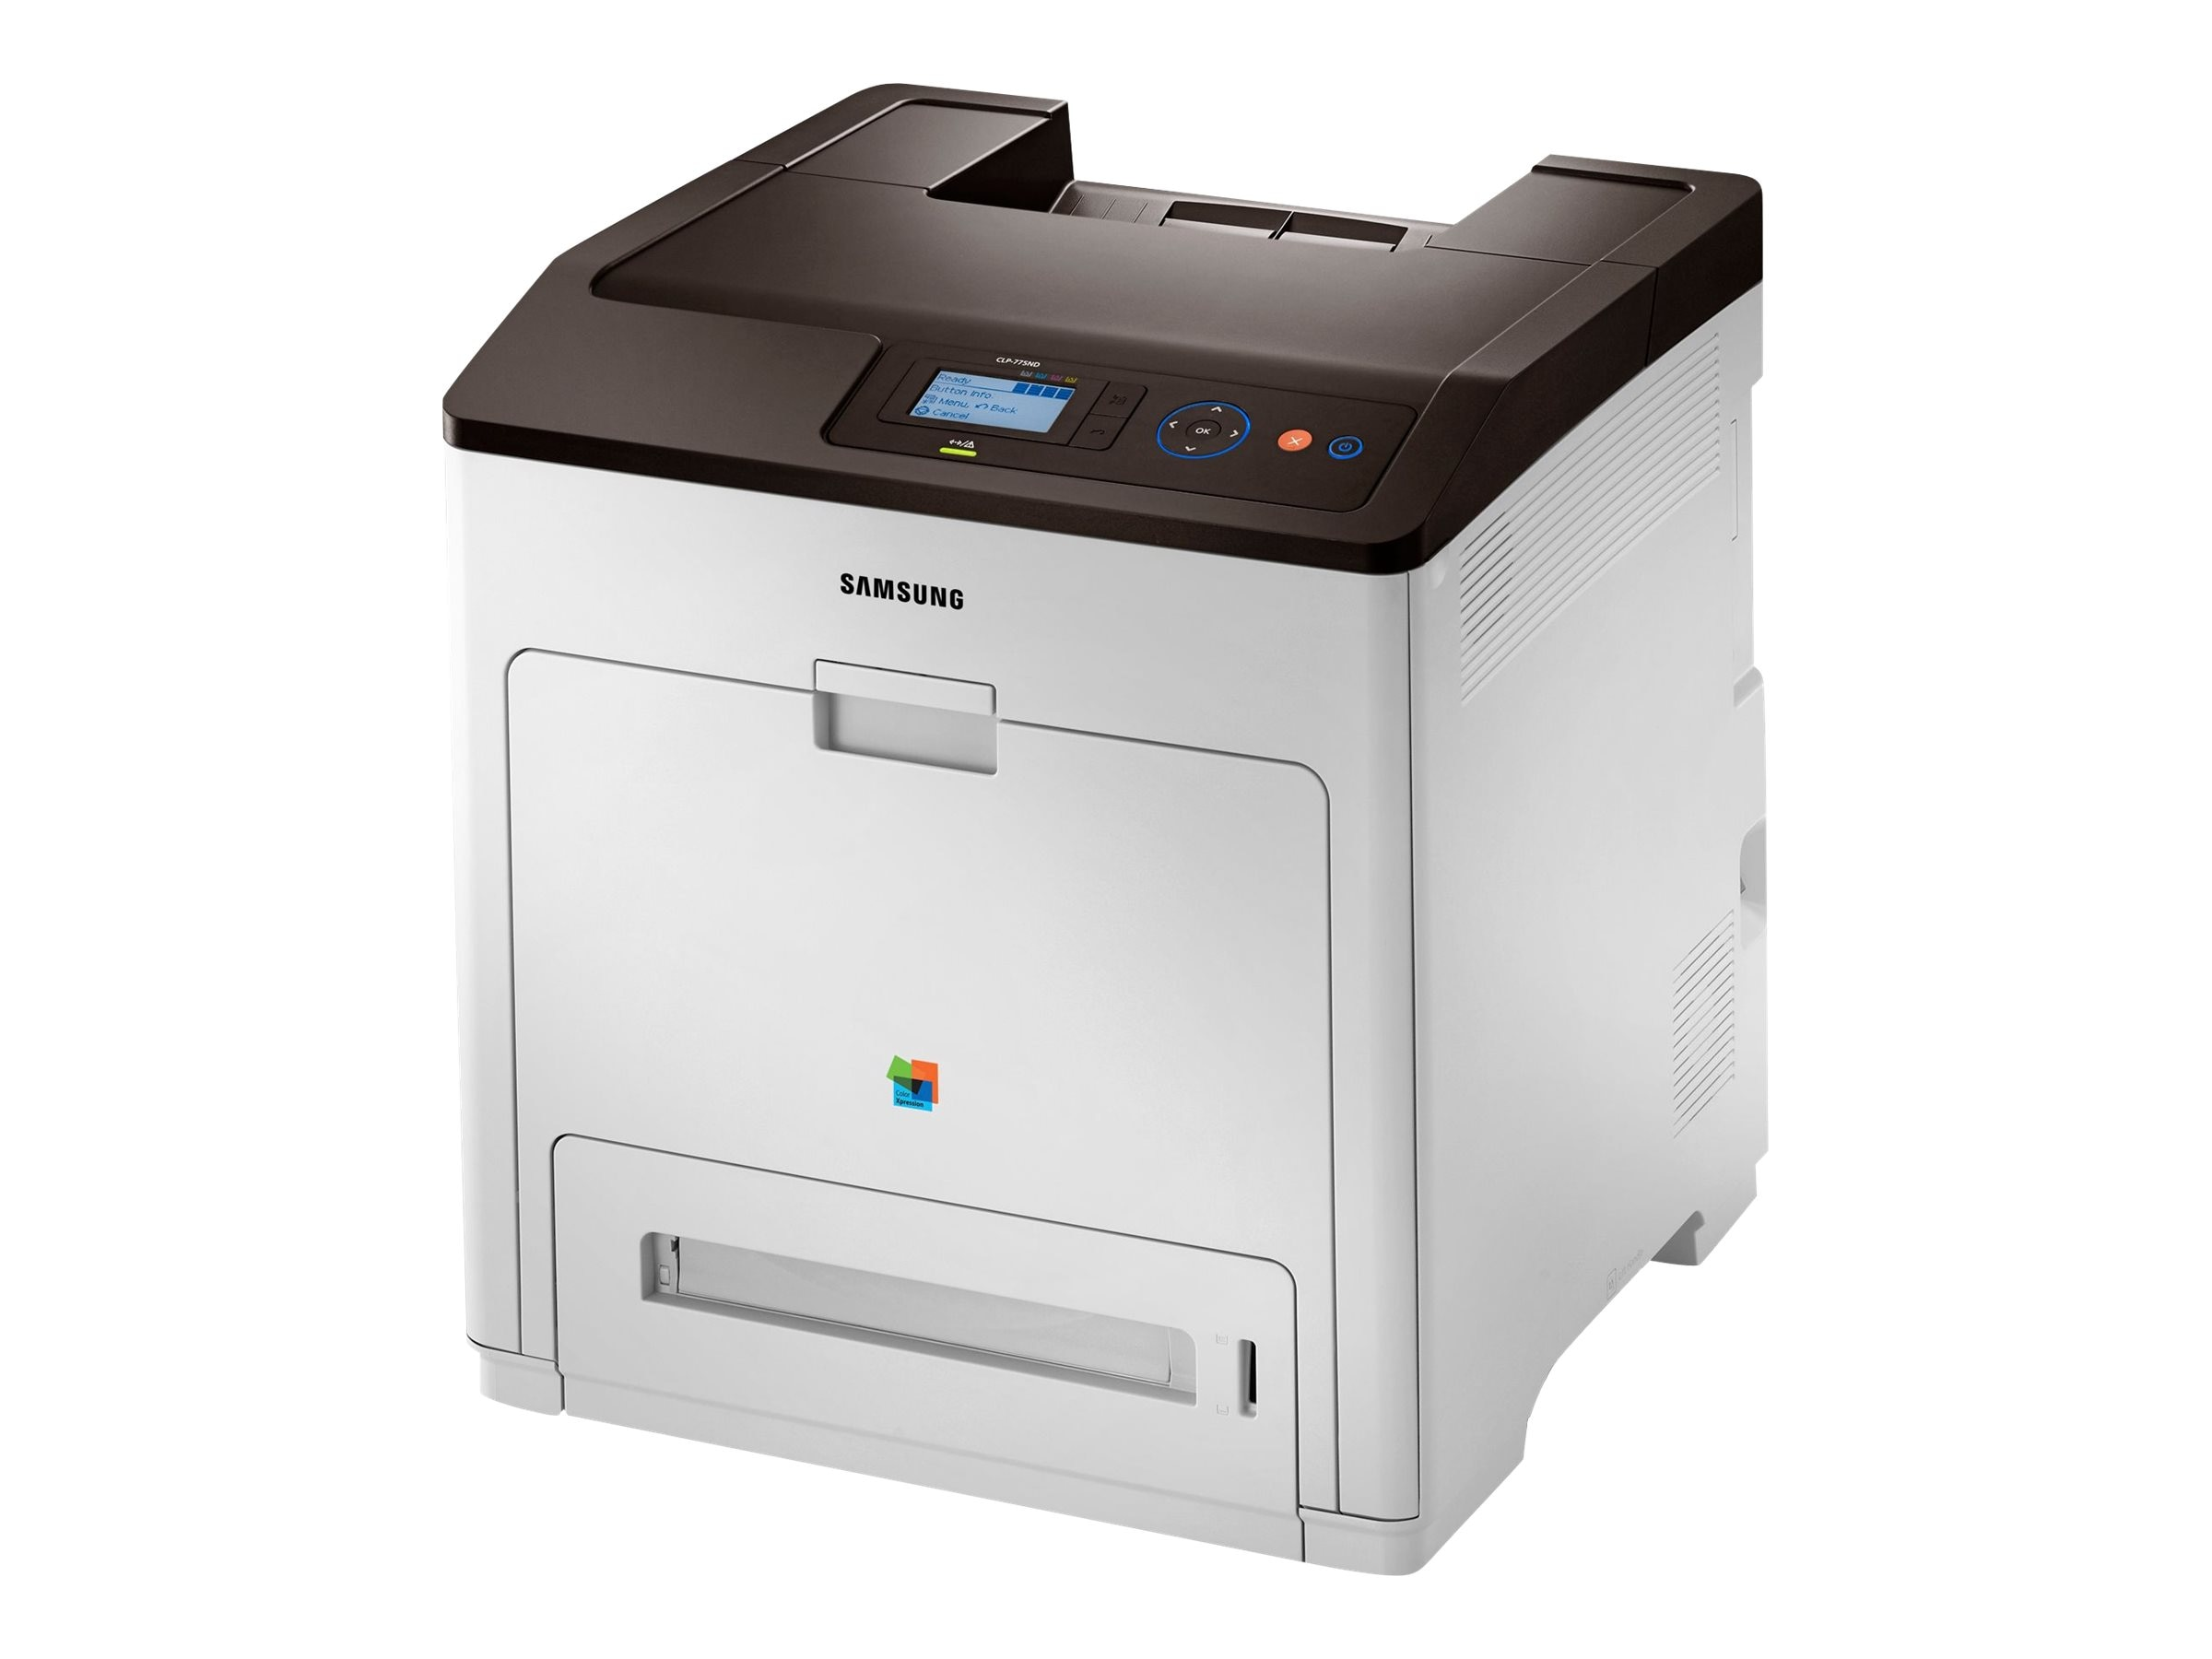 Samsung CLP-775ND Color Printer, CLP-775ND, 12693932, Printers - Laser & LED (color)